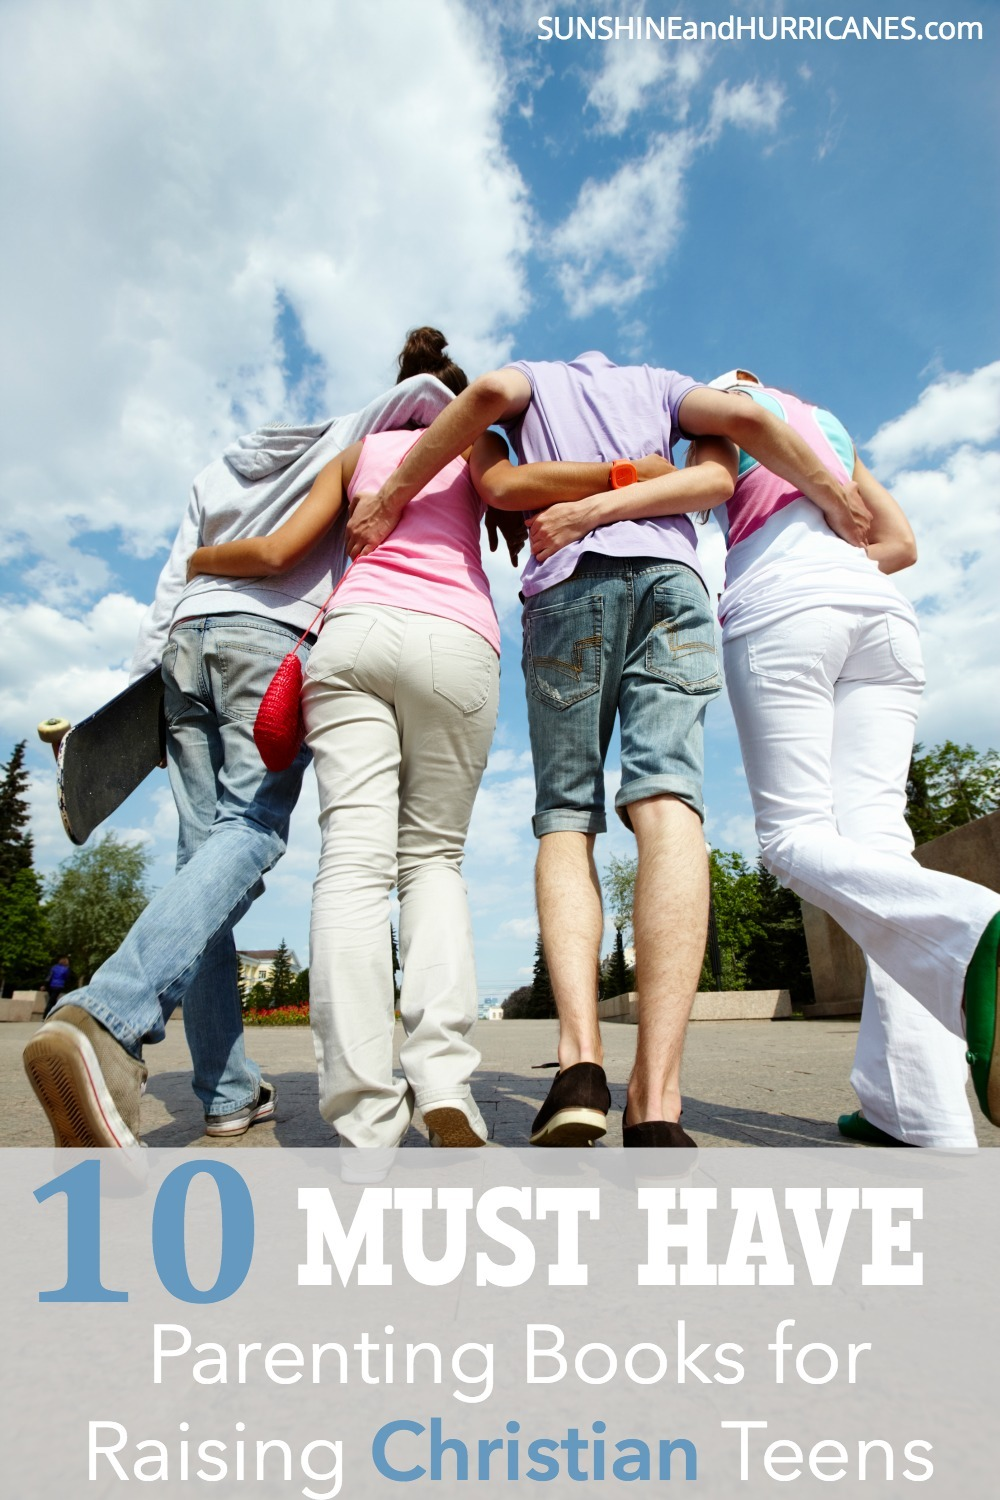 Raising christian teens in today's world is NOT easy. Prayers can be powerful, but your parenting has to be too. These 10 christian parenting books will become invaluable resources to you and your family as you help your teen build their own foundation of faith for the future.